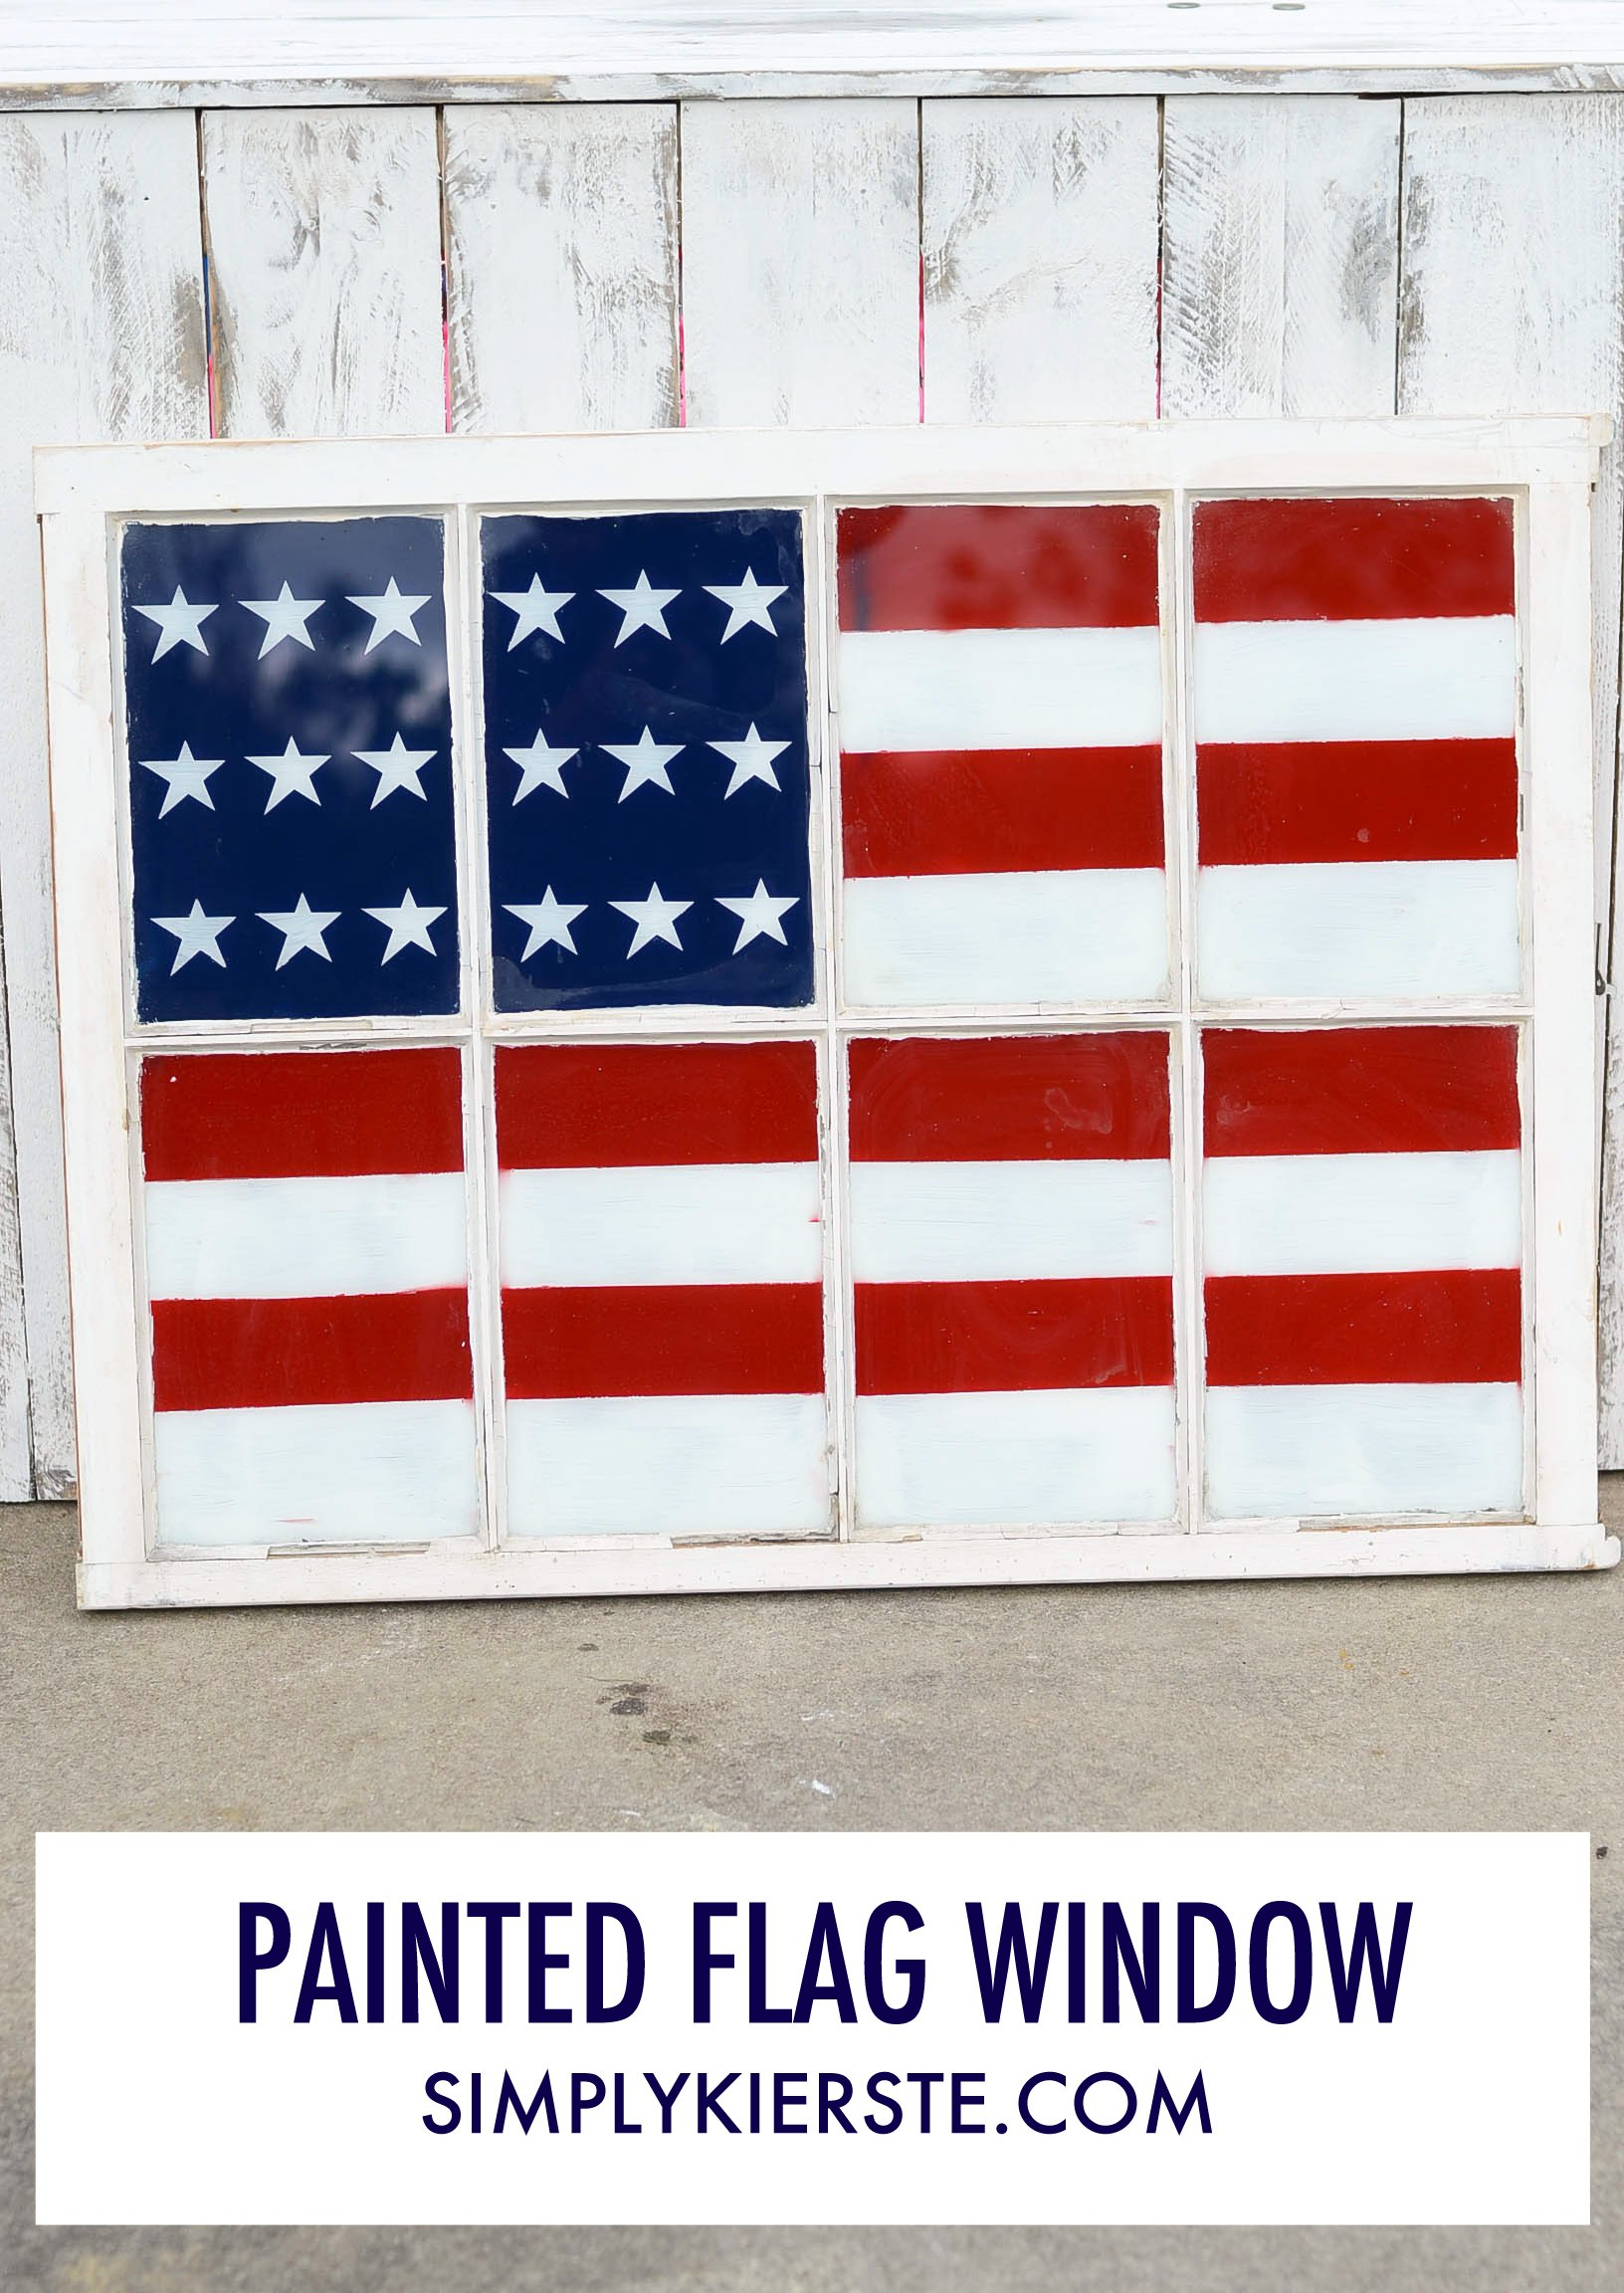 Painted Flag Window | 4th of July | simplykierste.com